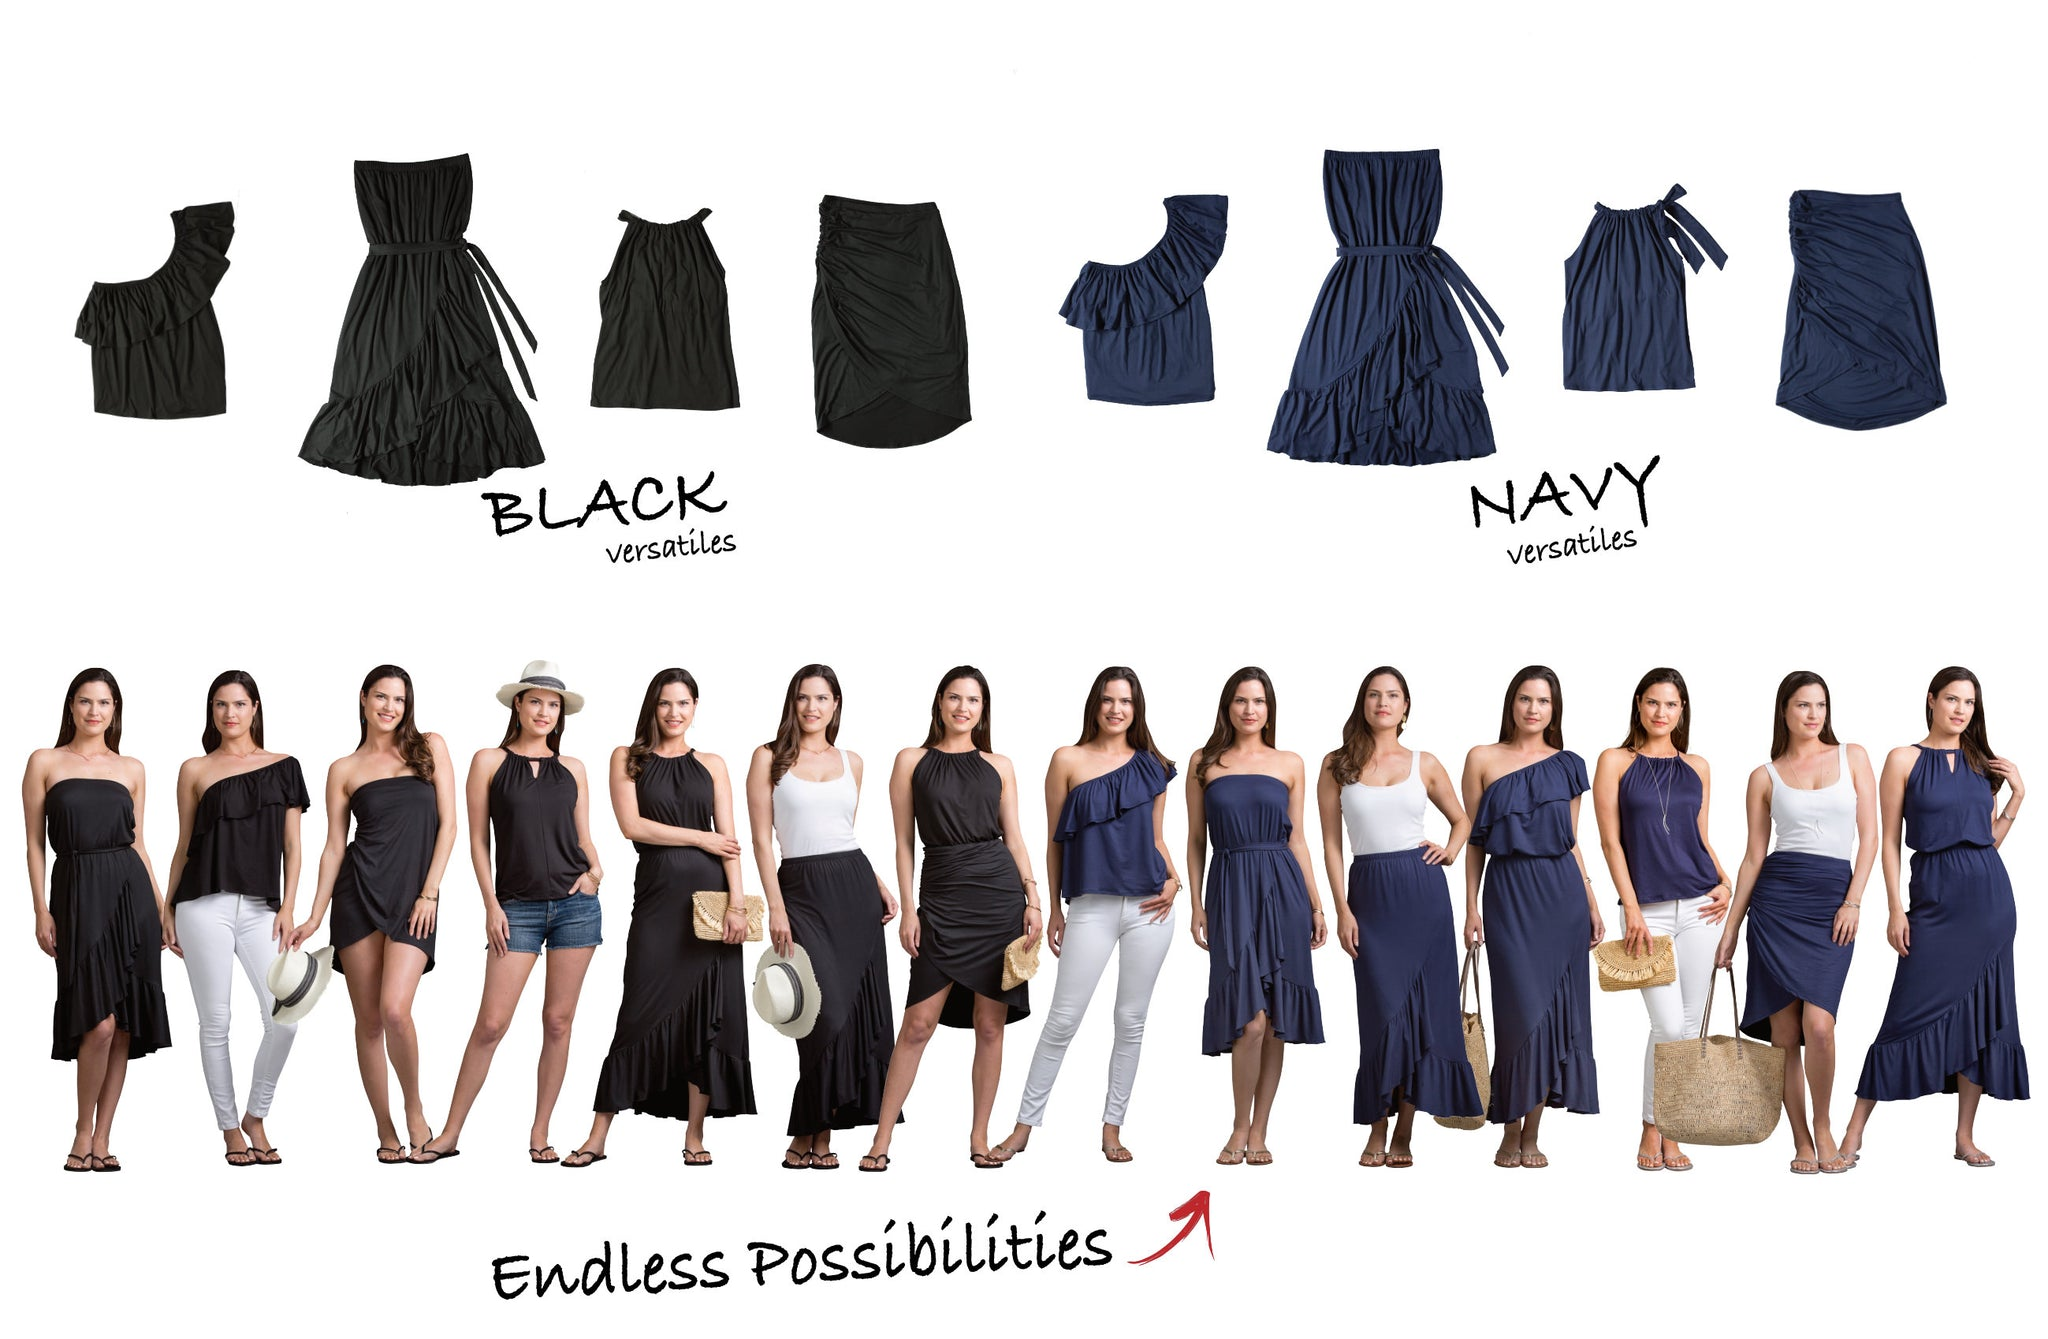 Vacay Versatiles Black and Navy Collection